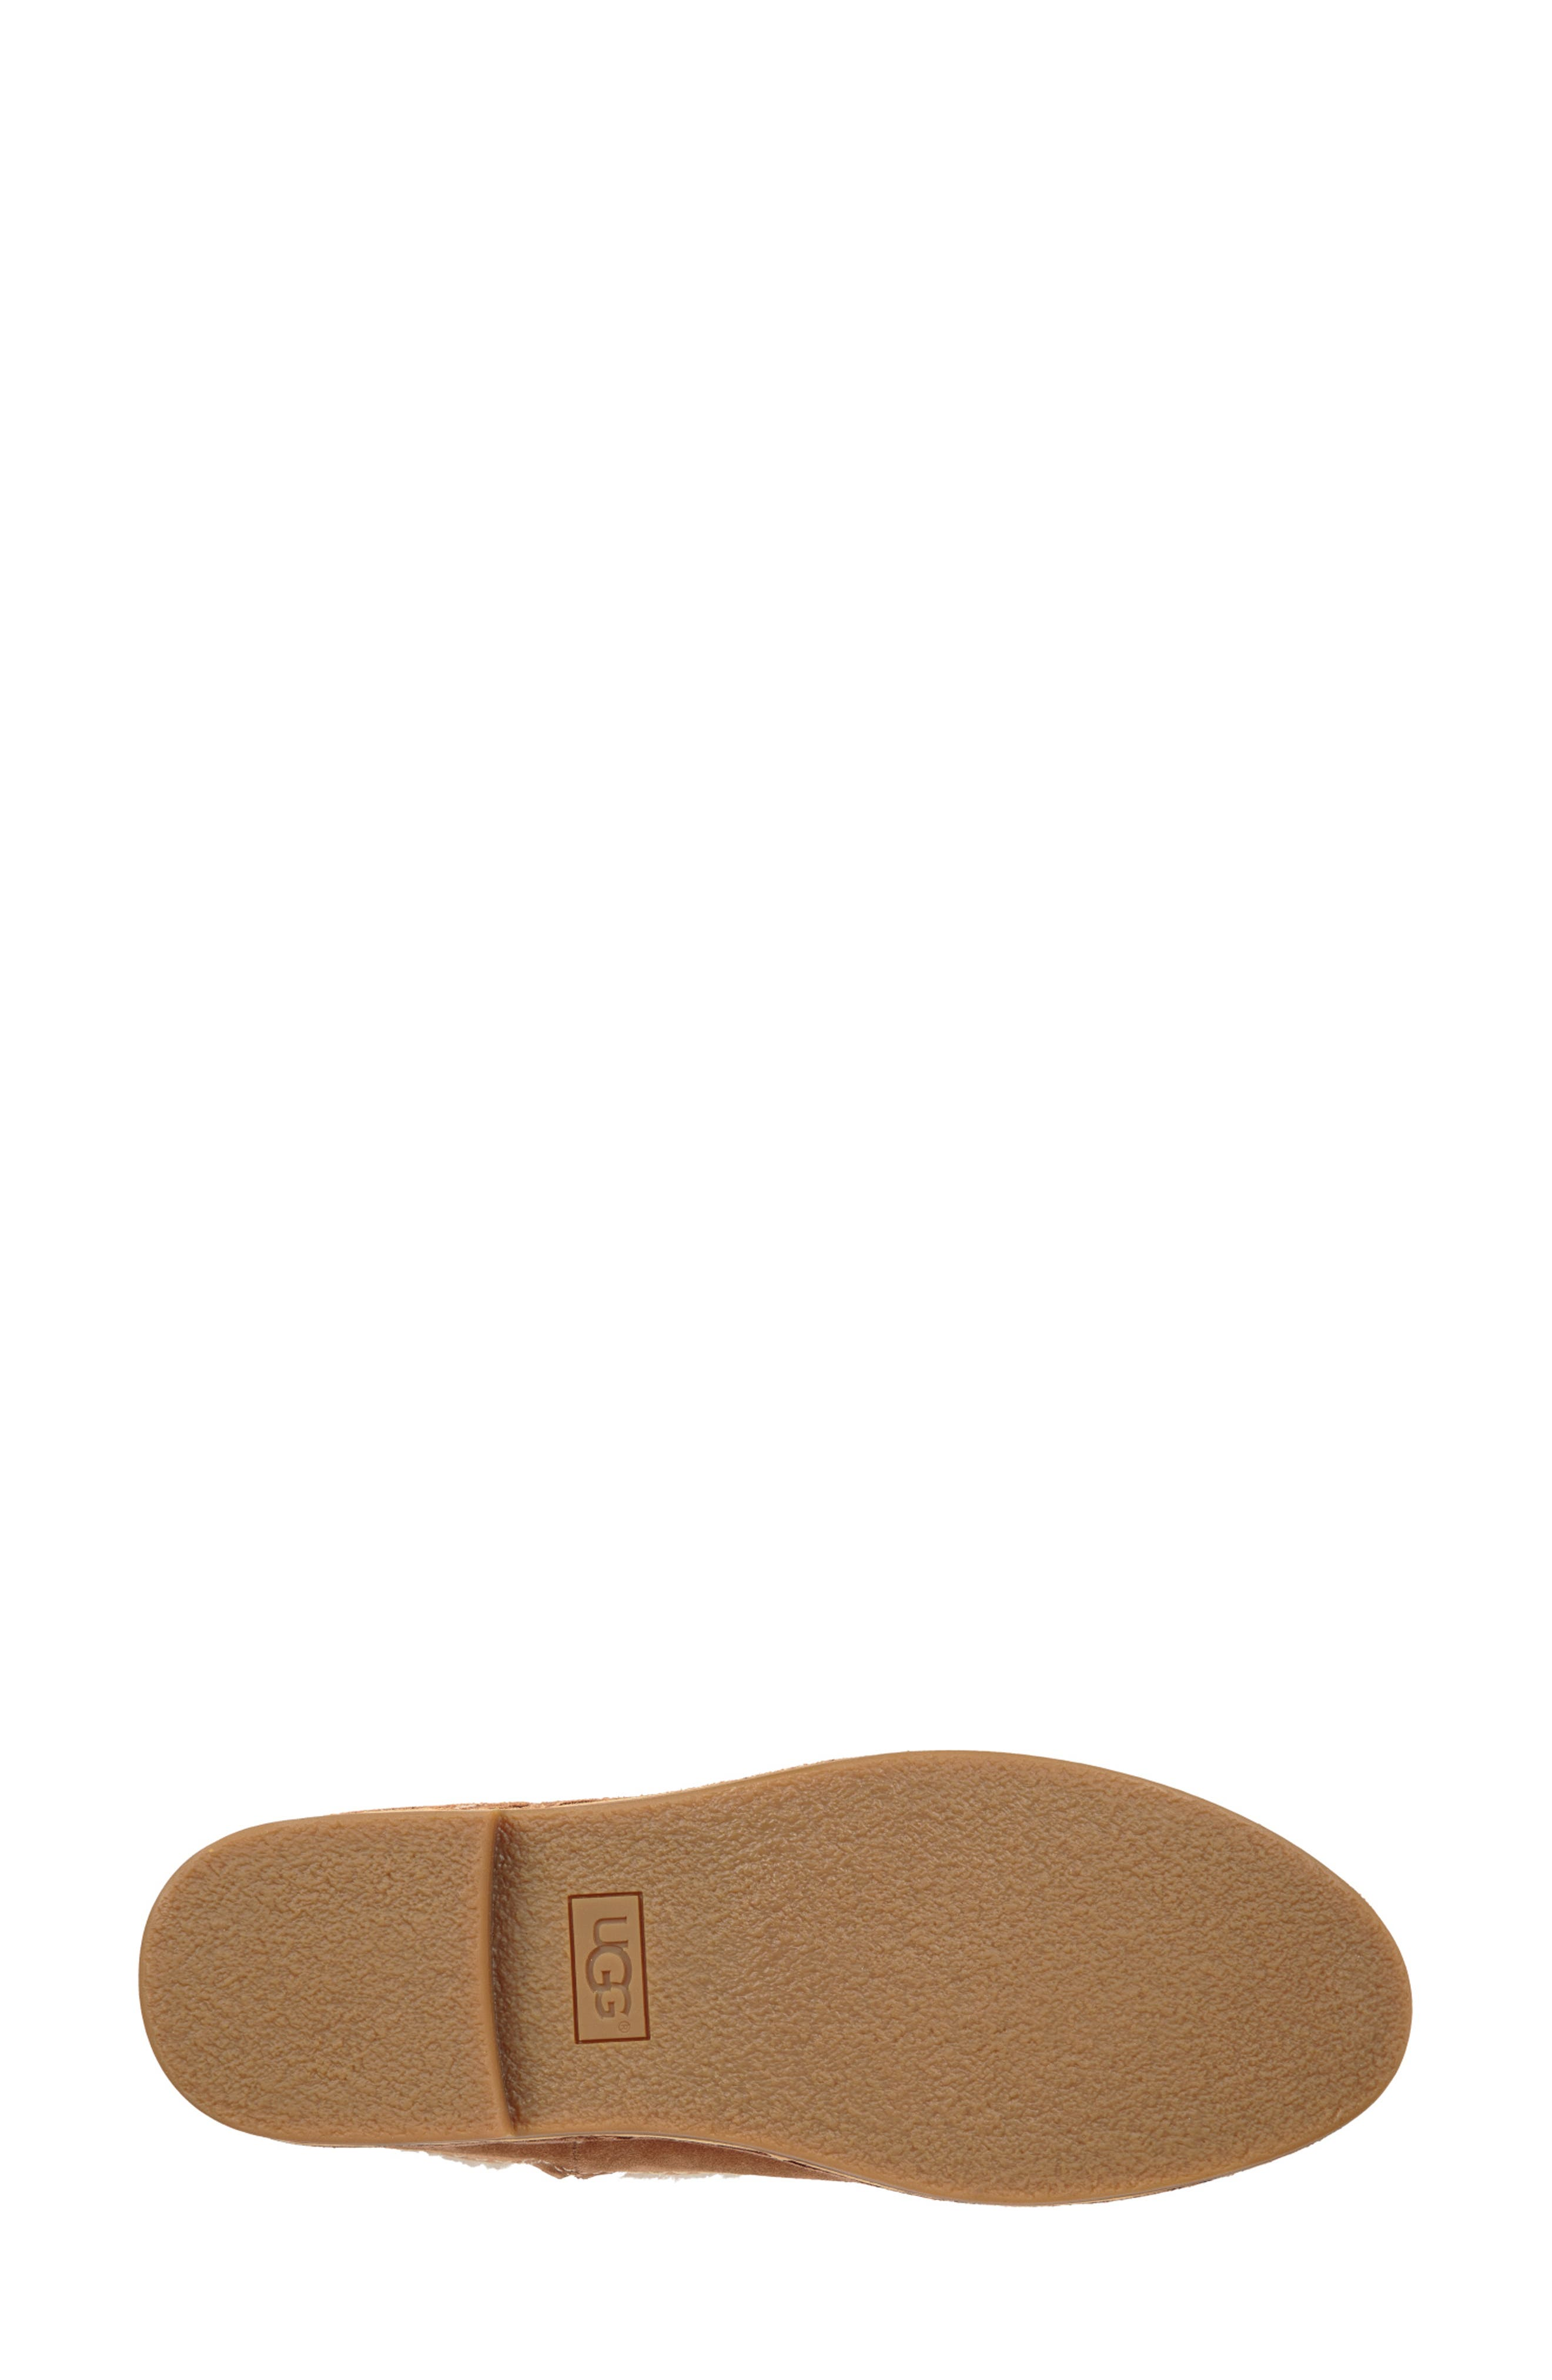 UGG<SUP>®</SUP>, Catica Boot, Alternate thumbnail 5, color, CHESTNUT SUEDE